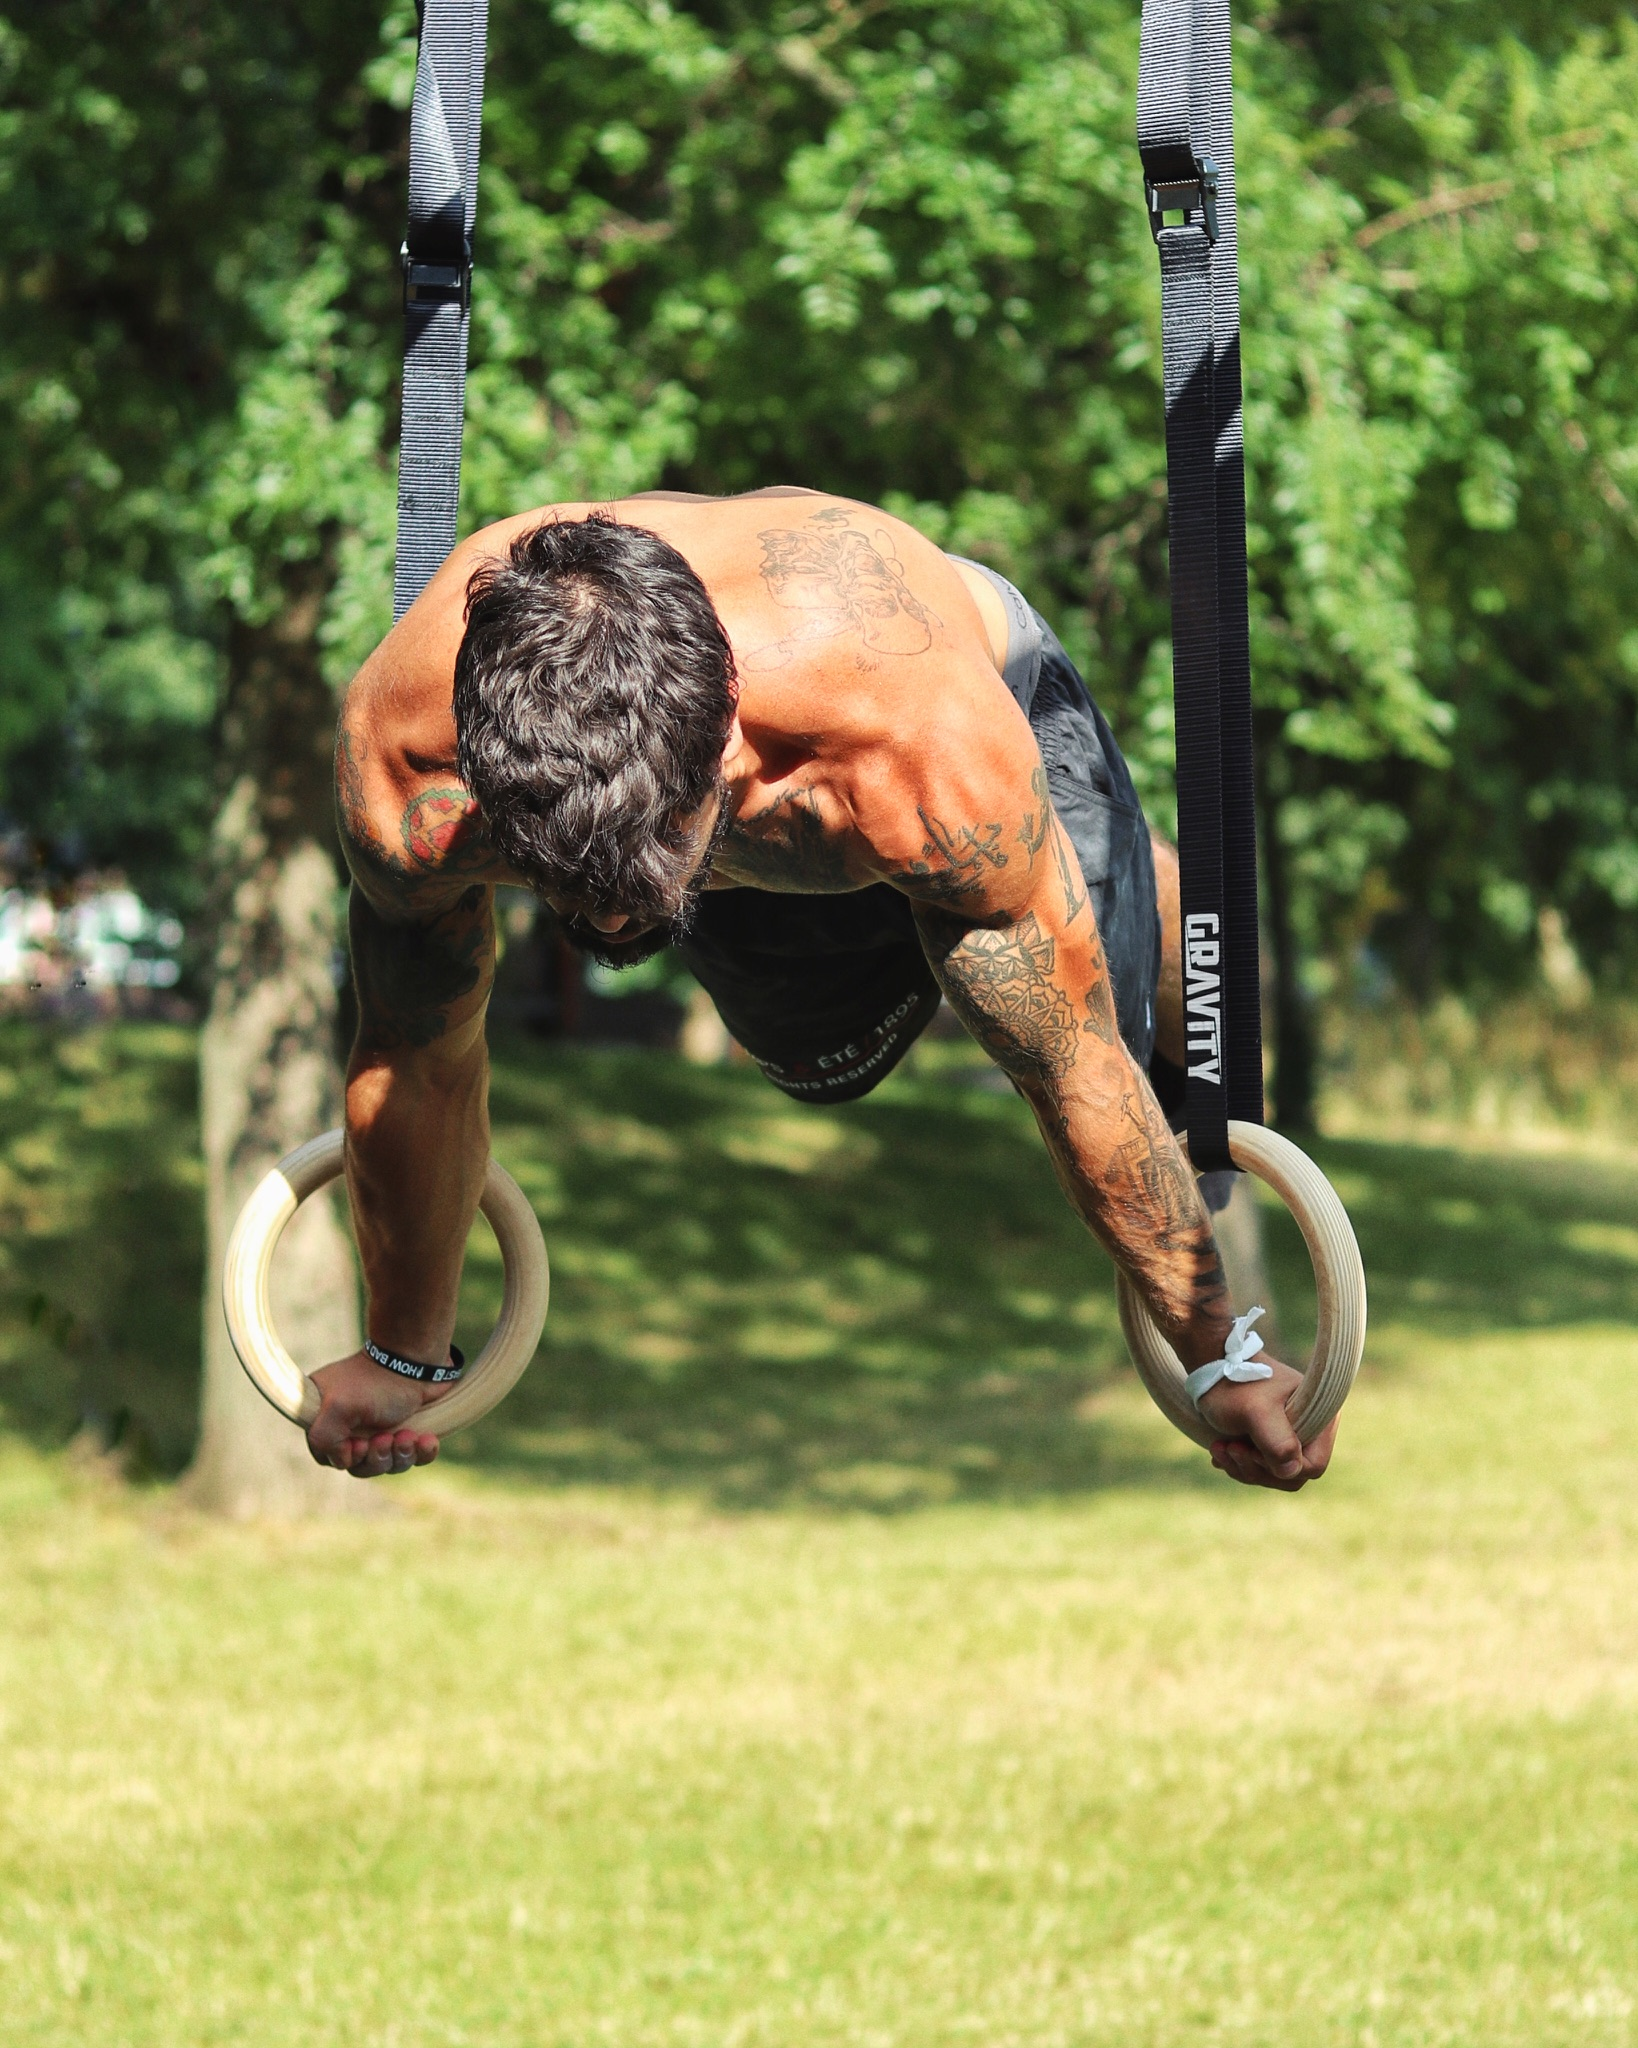 planche on rings